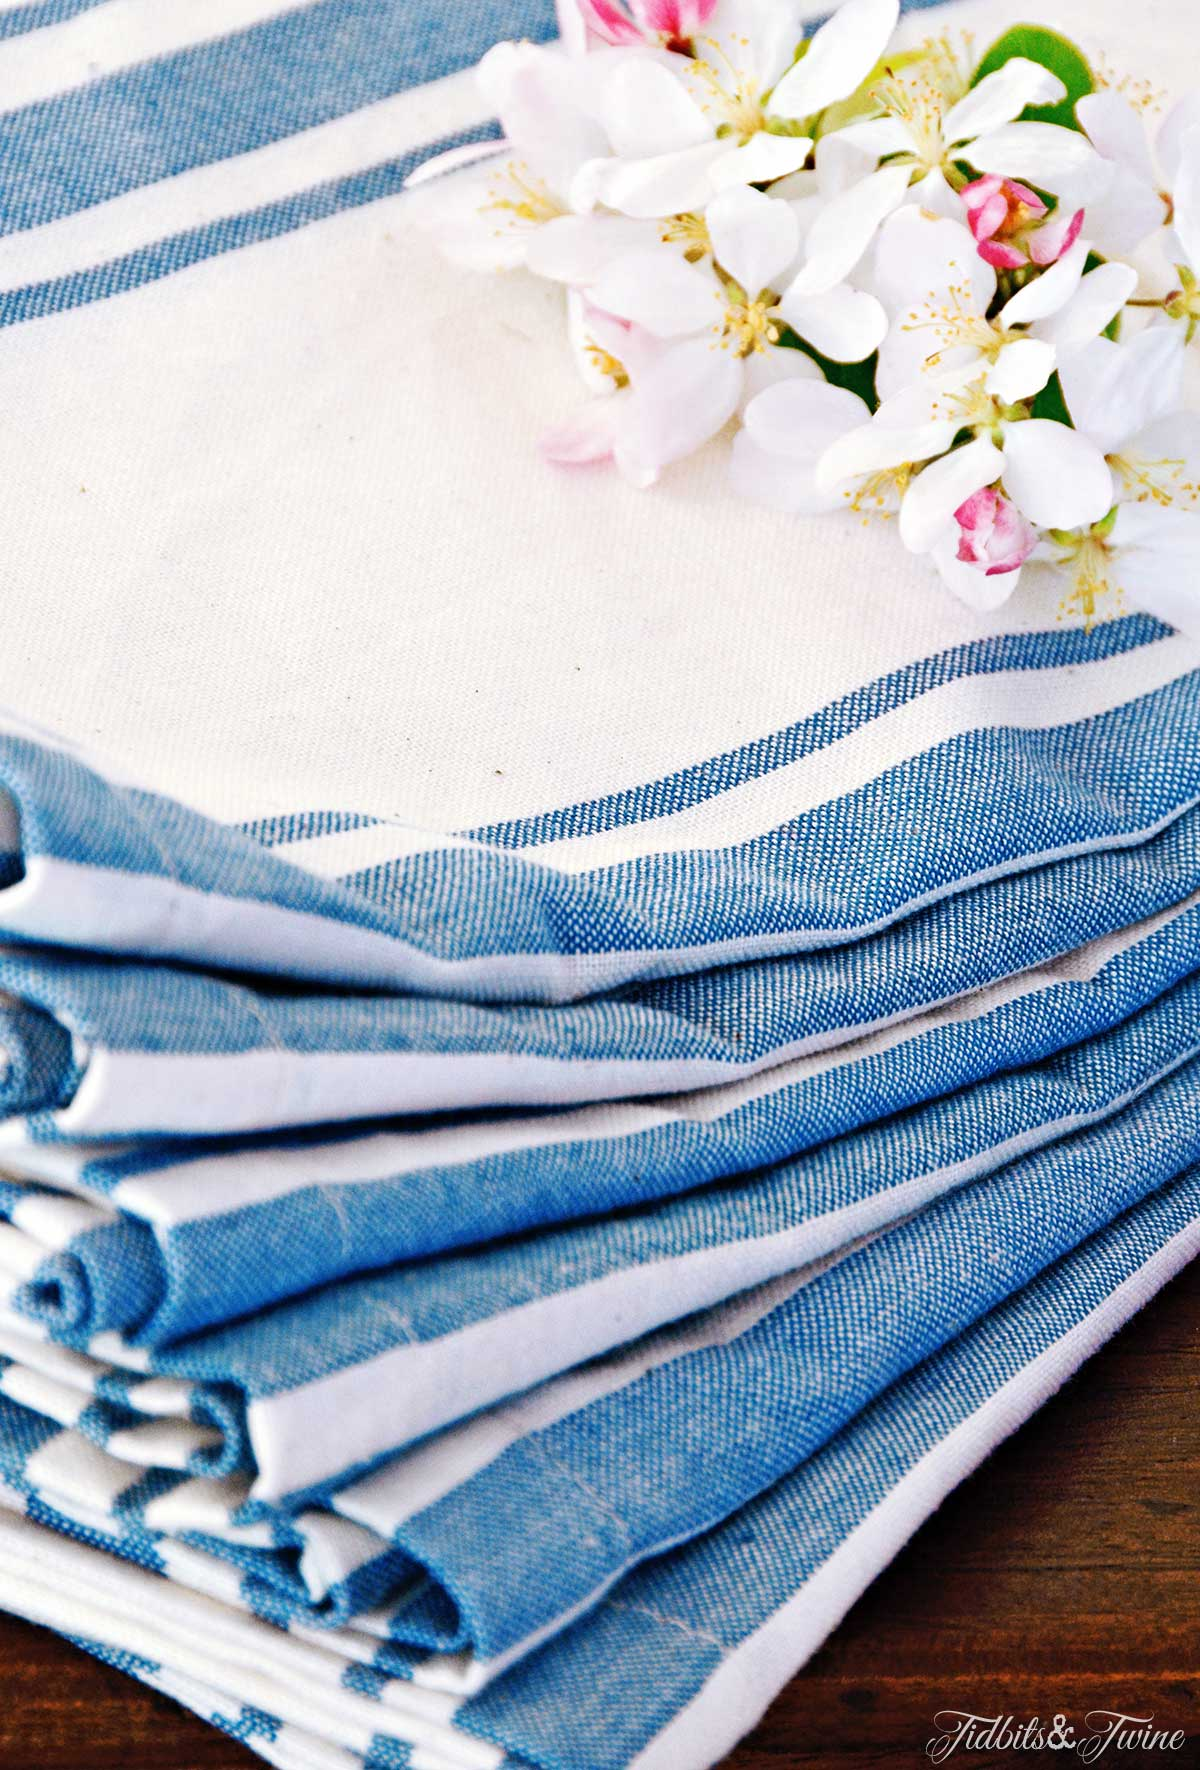 TIDBITS&TWINE Blue Striped Napkins